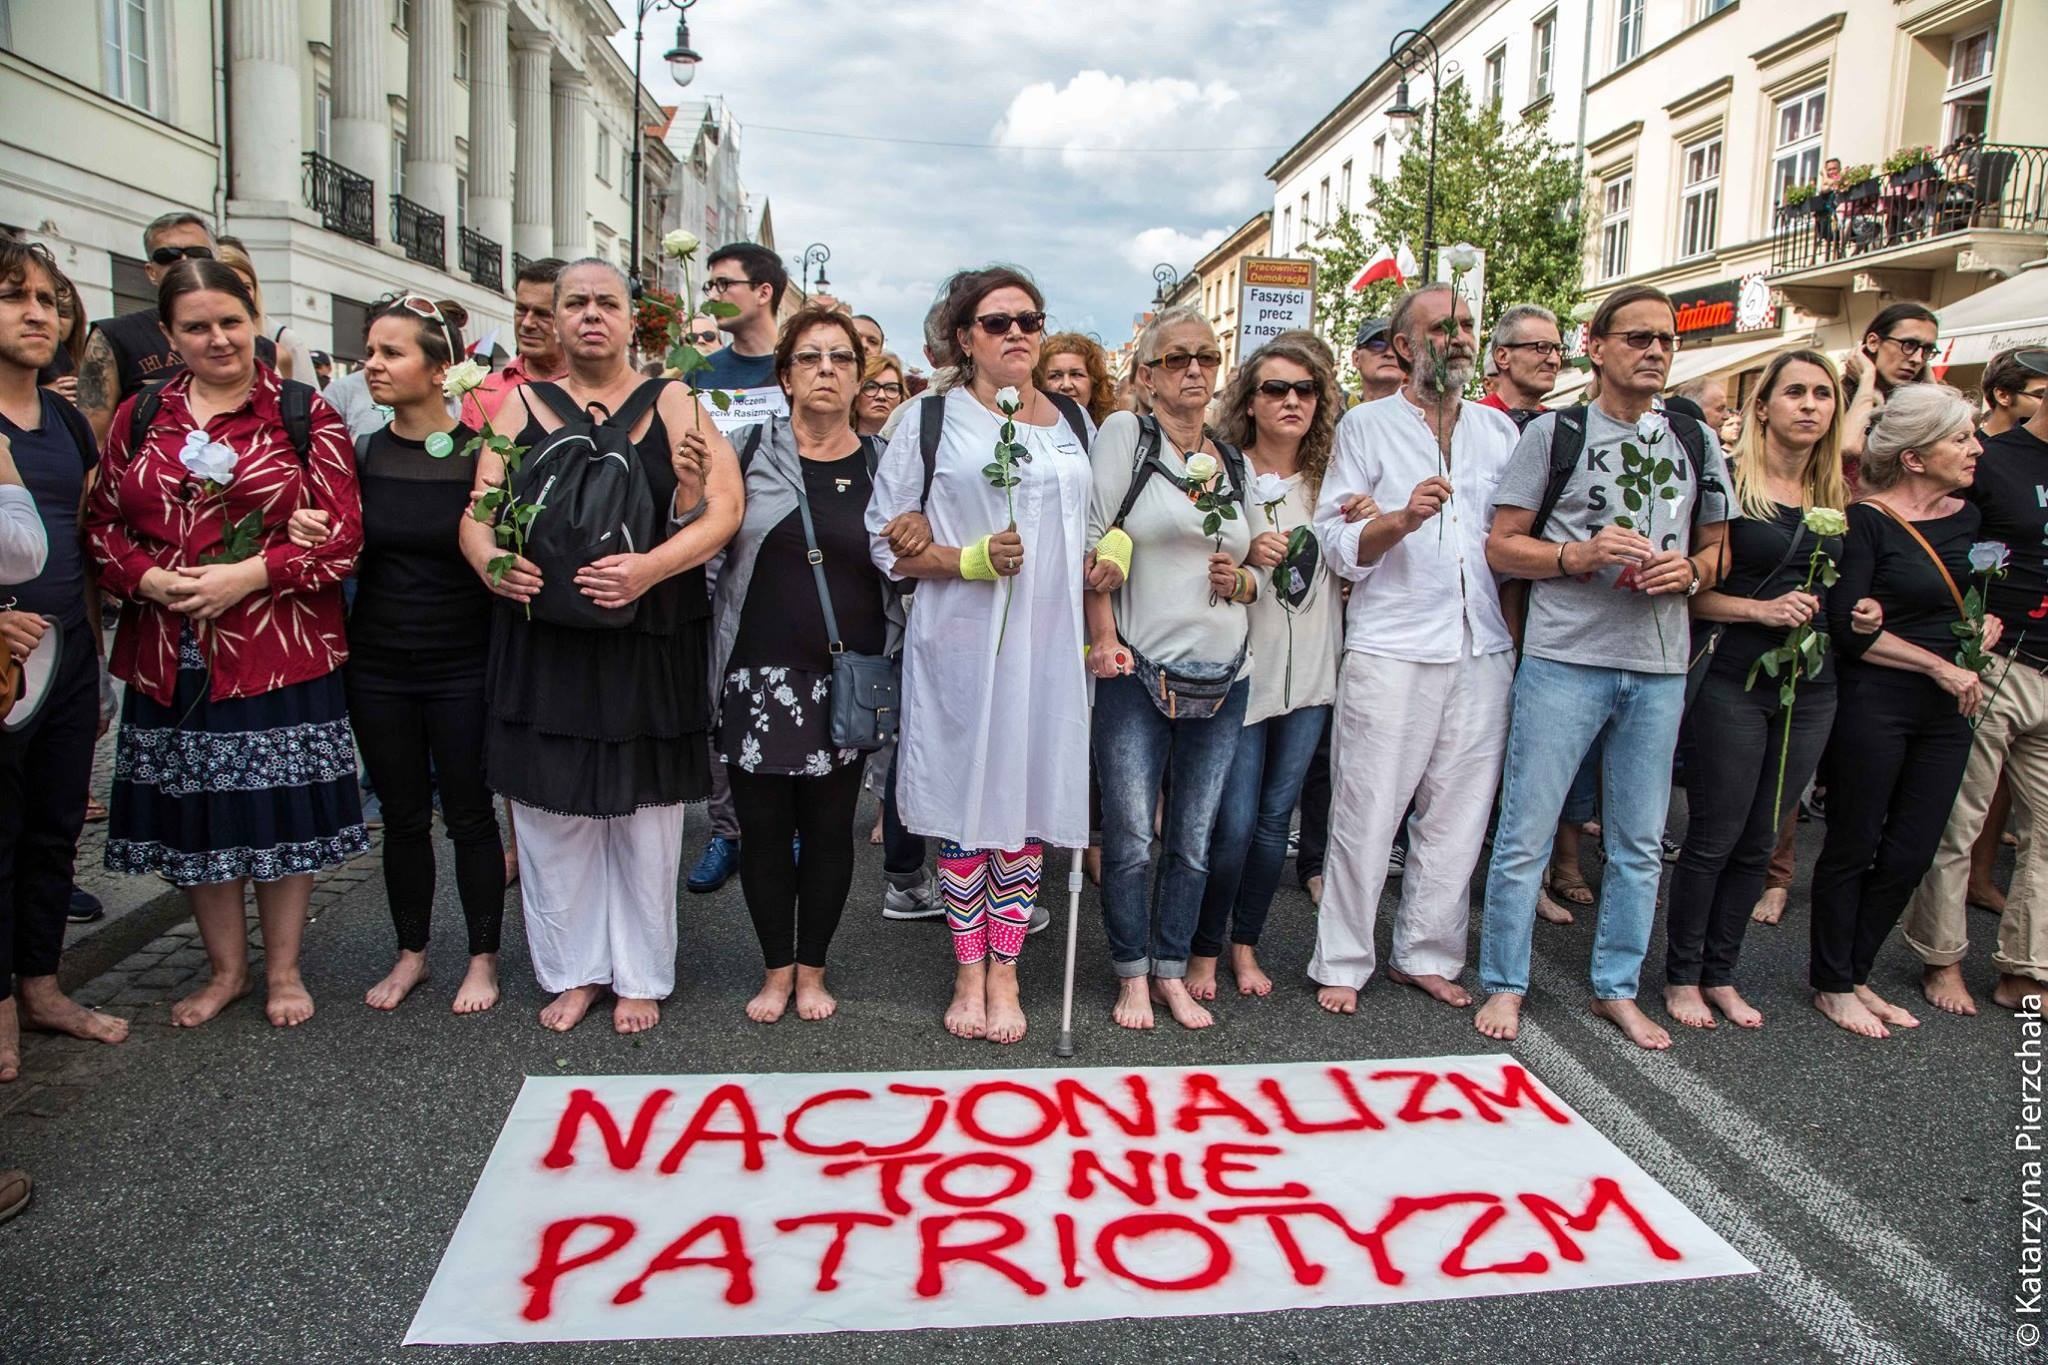 #stories of resistance – Obywatele RP: a story of civil disobedience from Poland